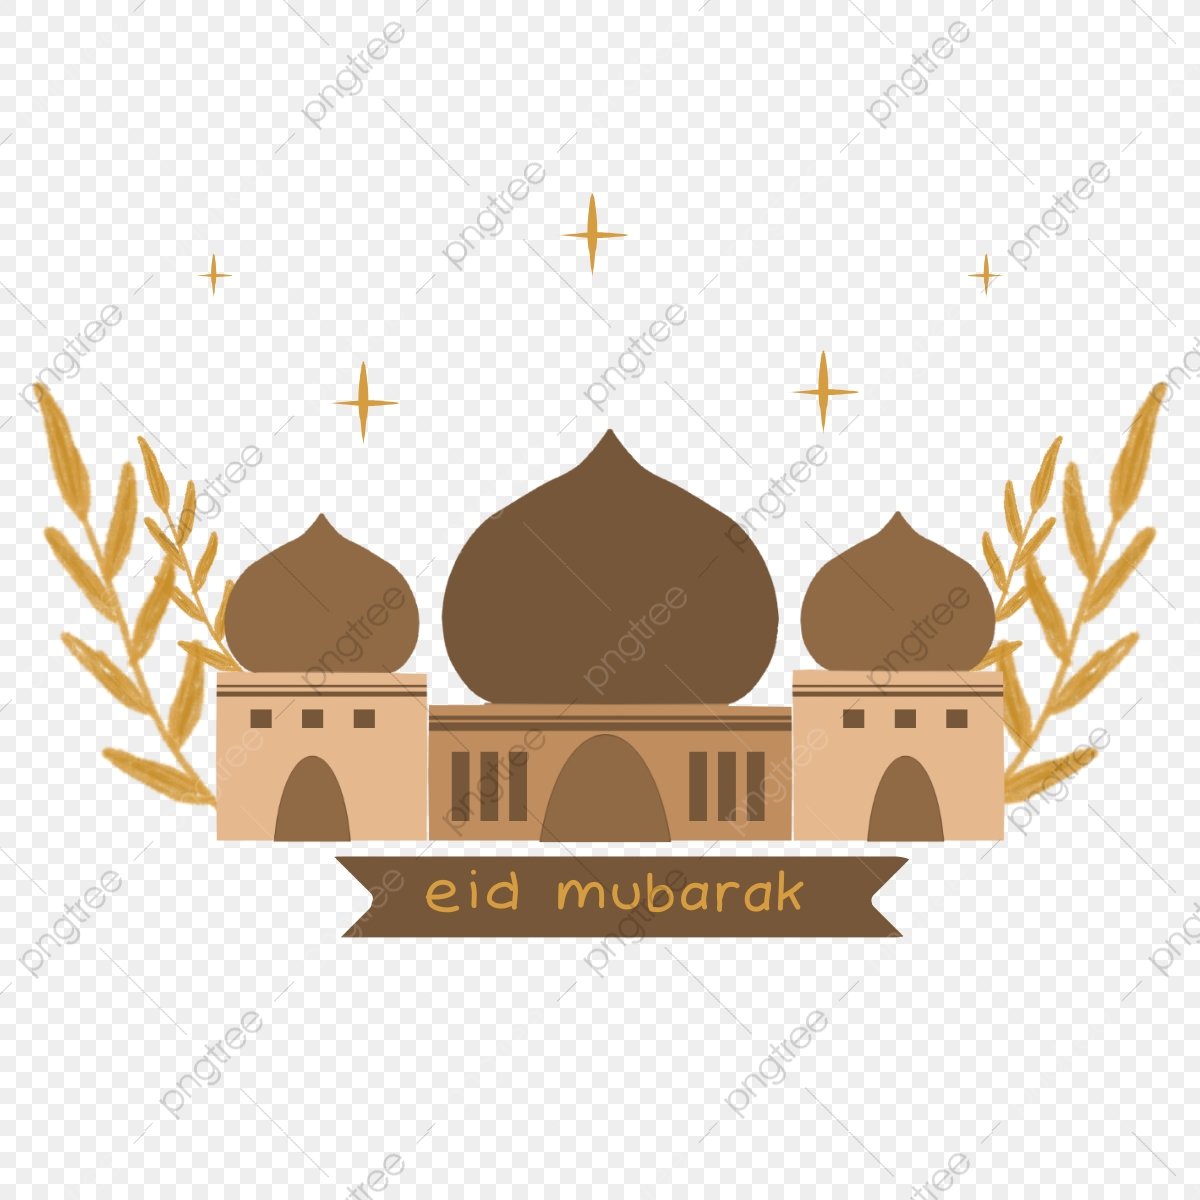 Happy Eid Mubarak Template In Brown Colour Brown Leaf Ribbon Png Transparent Clipart Image And Psd File For Free Download